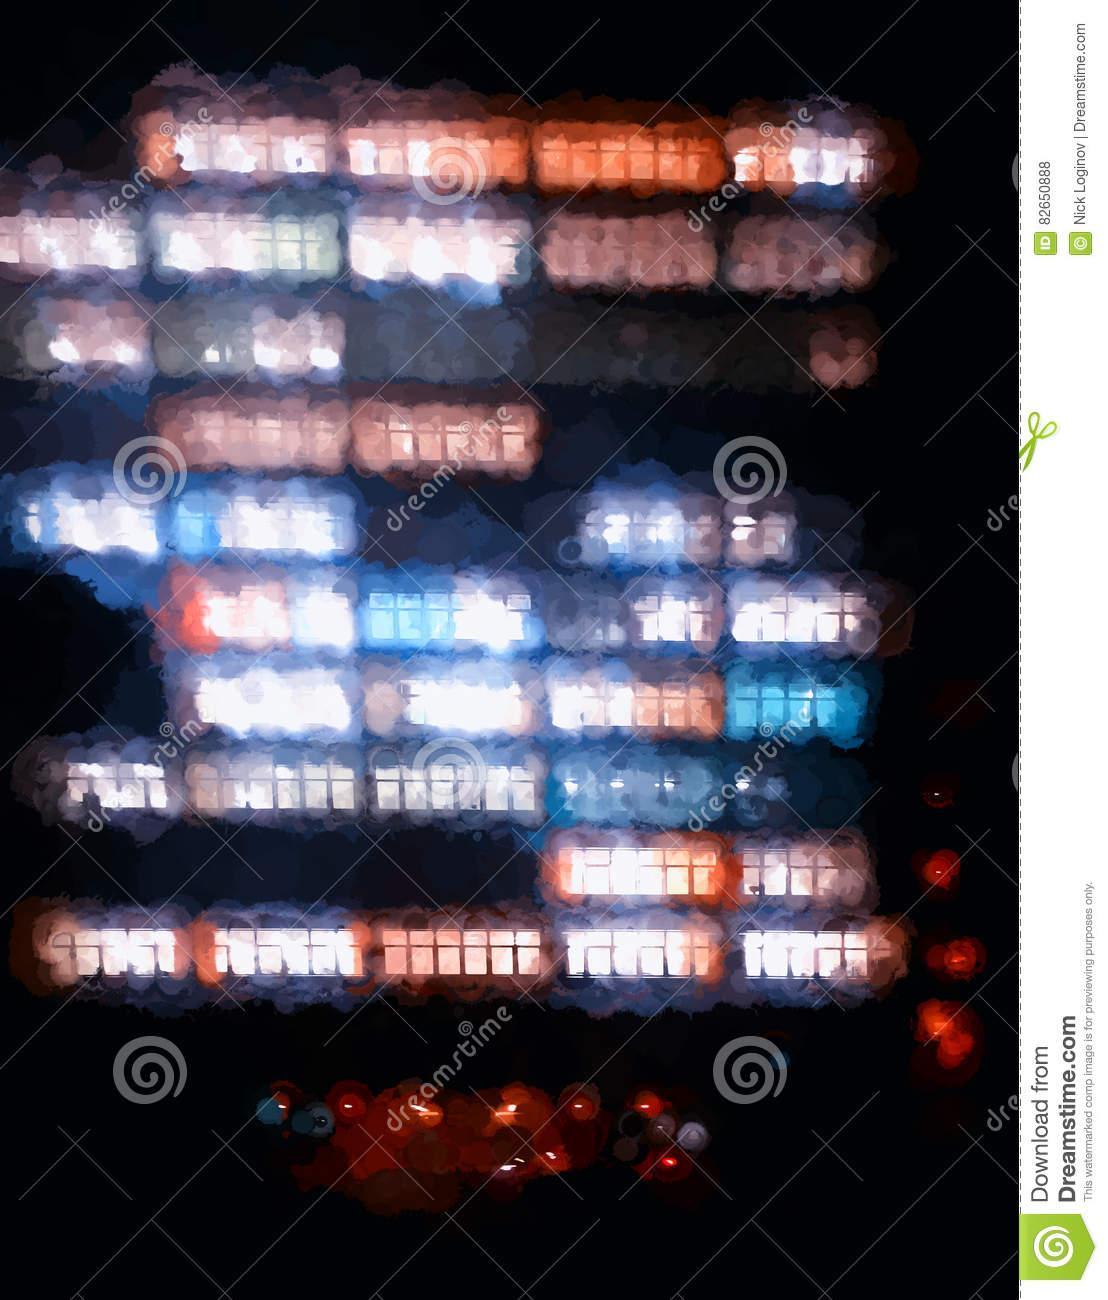 Vertical Office Building Illumination Illustration Background Stock